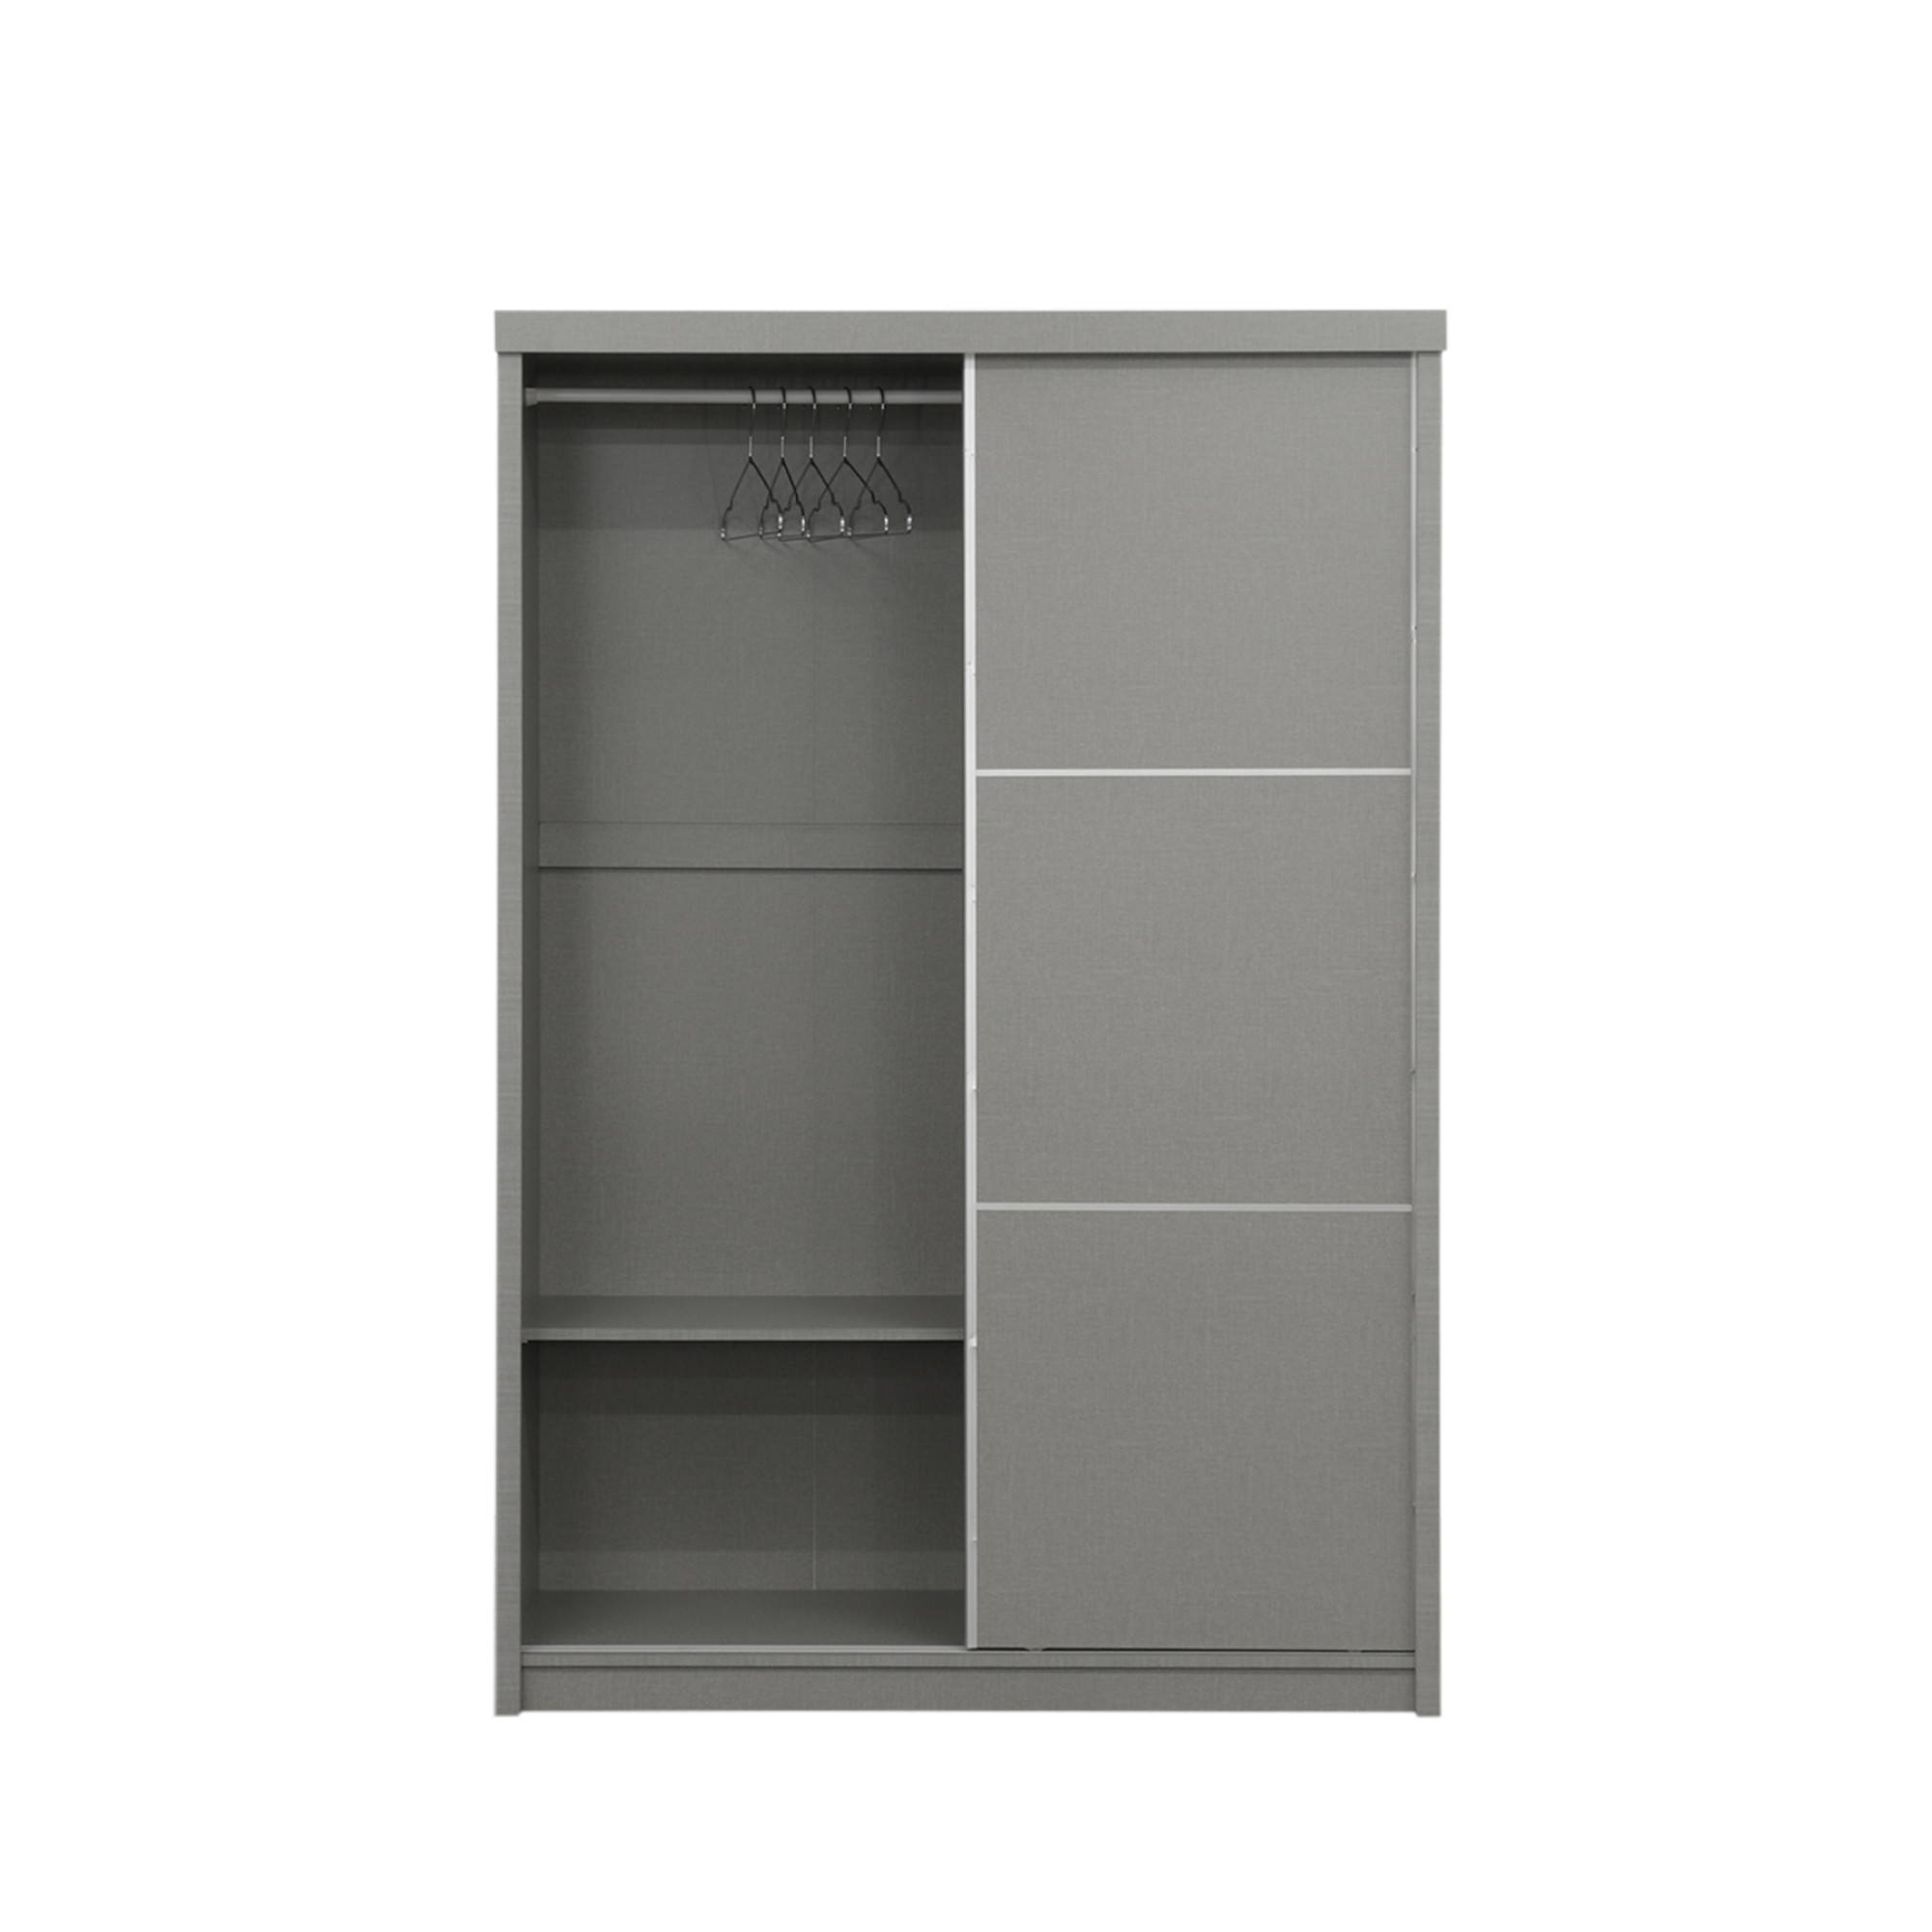 products grey riviera rauch german morella furniture gloss range bedroom wardrobe oak made